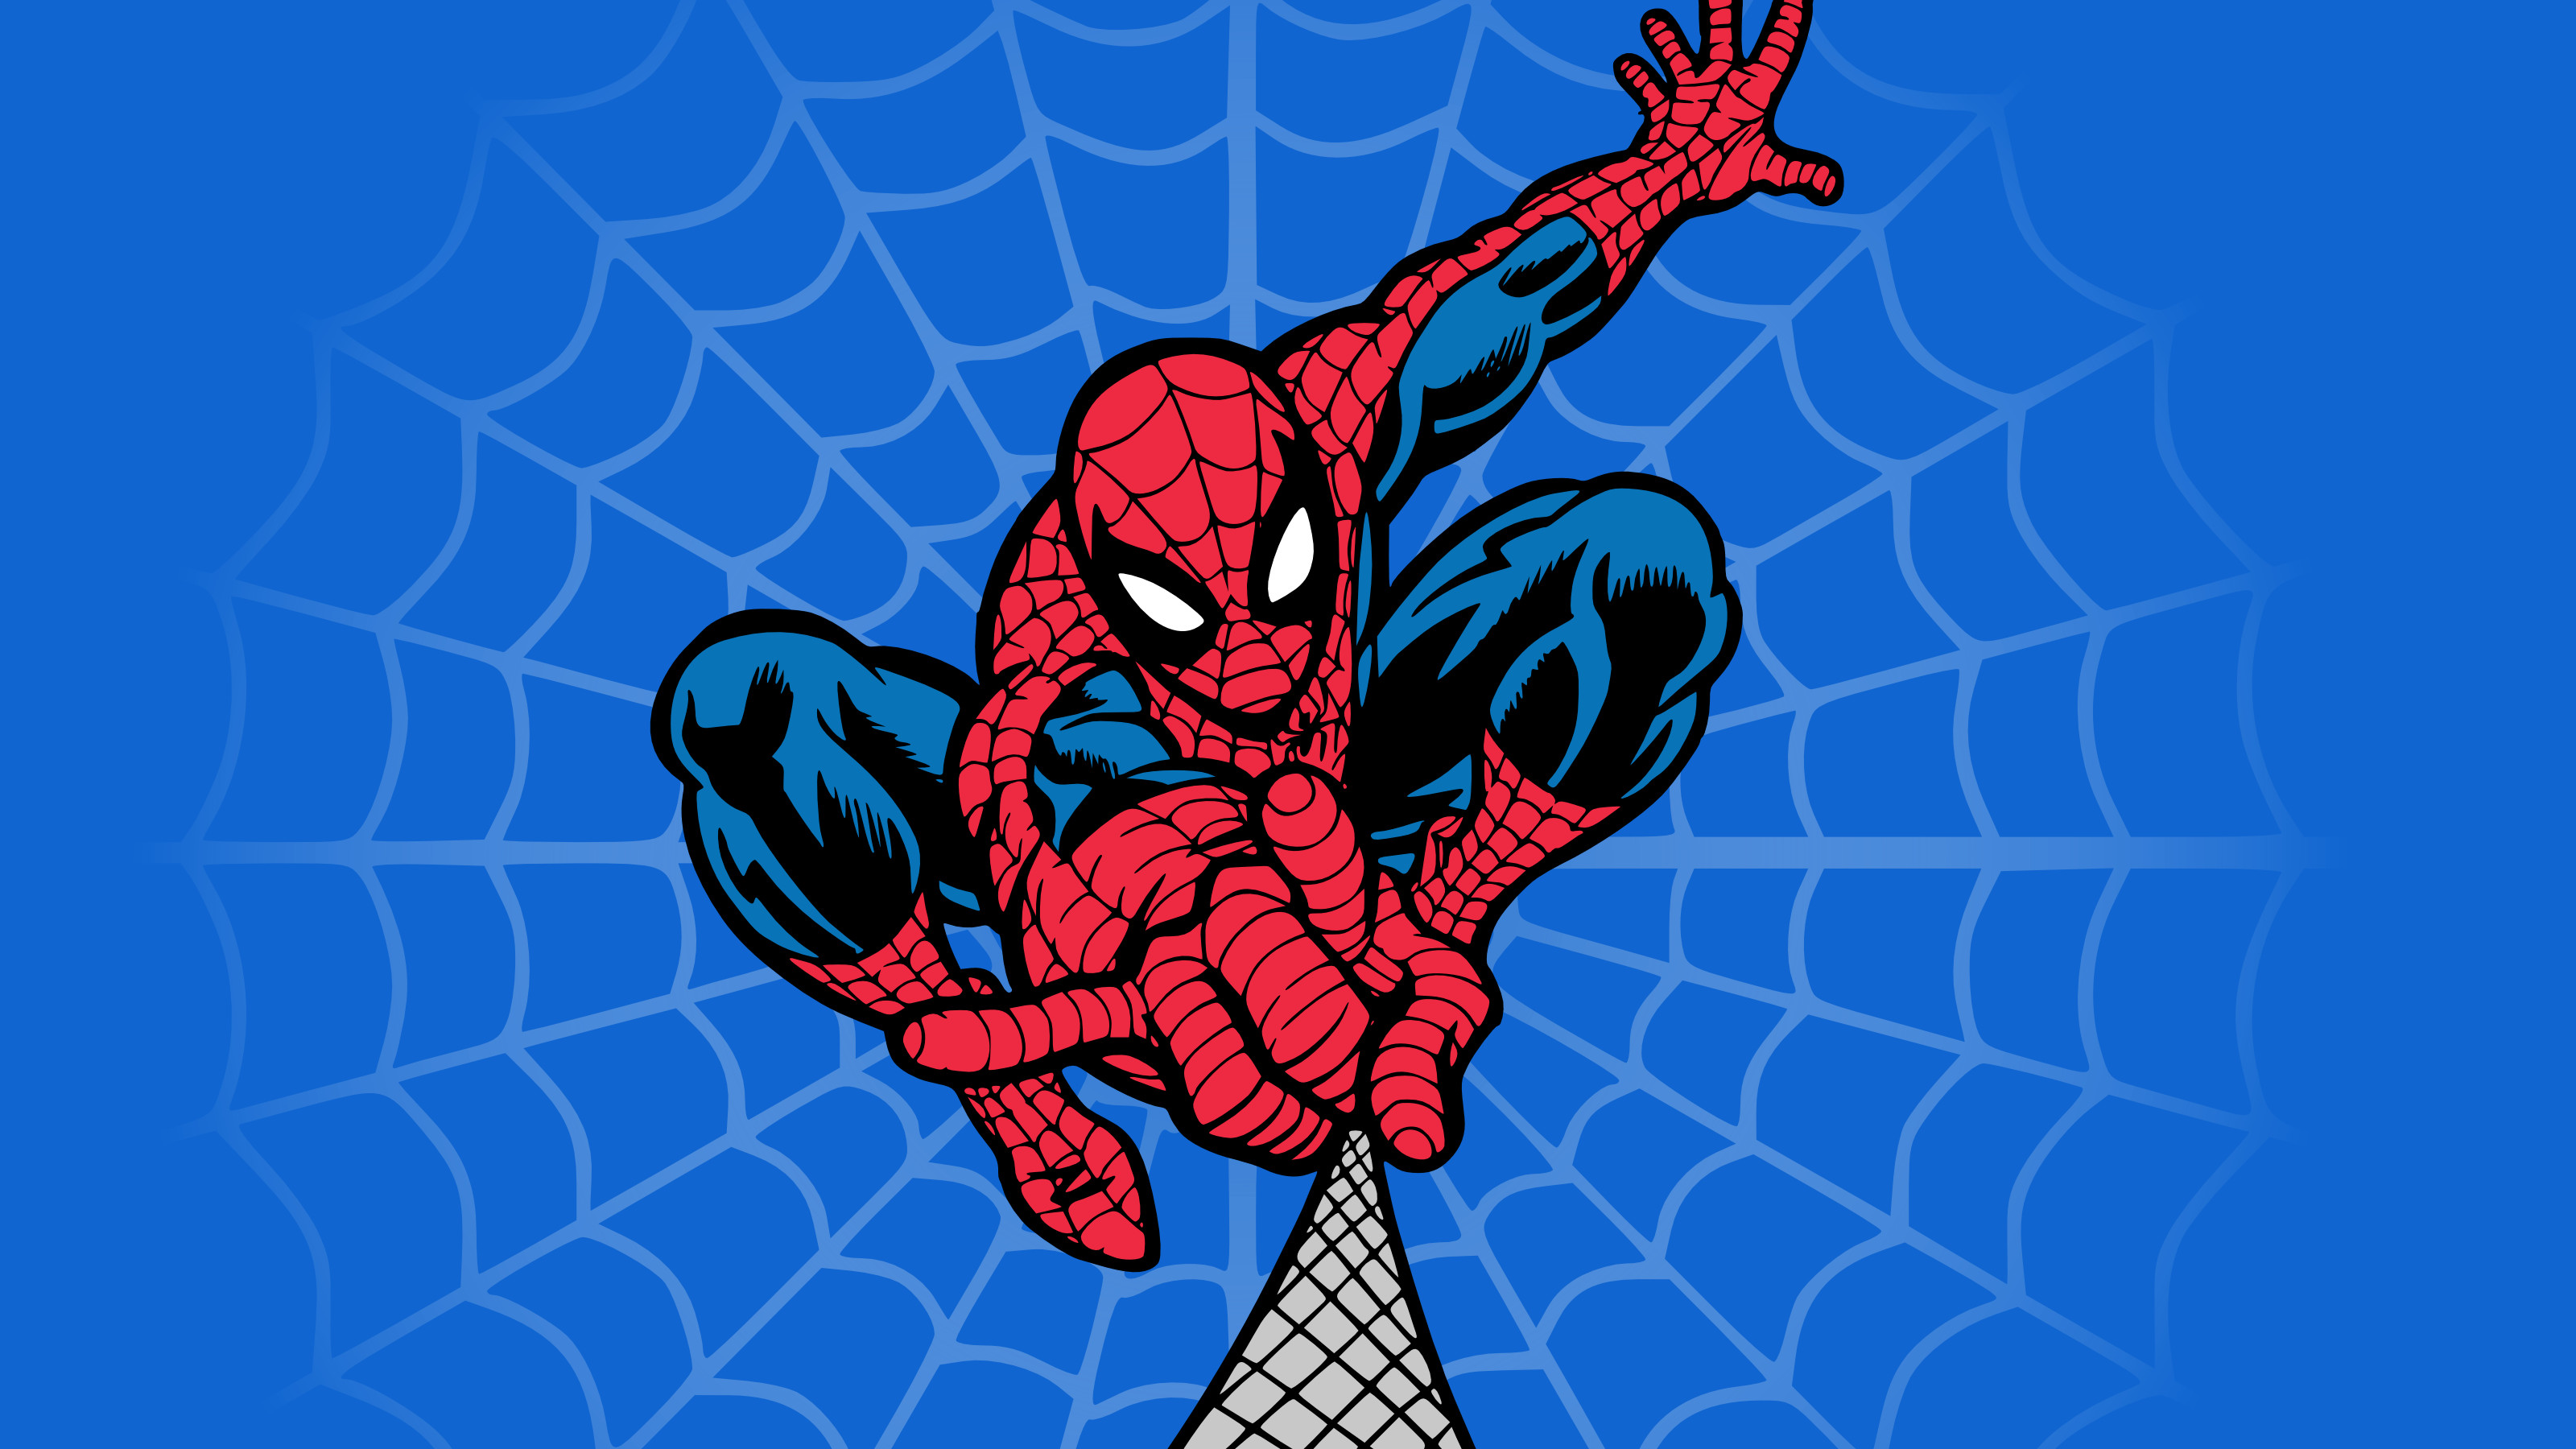 Good Wallpaper Mac Spiderman - 440366-spiderman-backgrounds-3200x1800-for-mac  Collection_263553.jpg